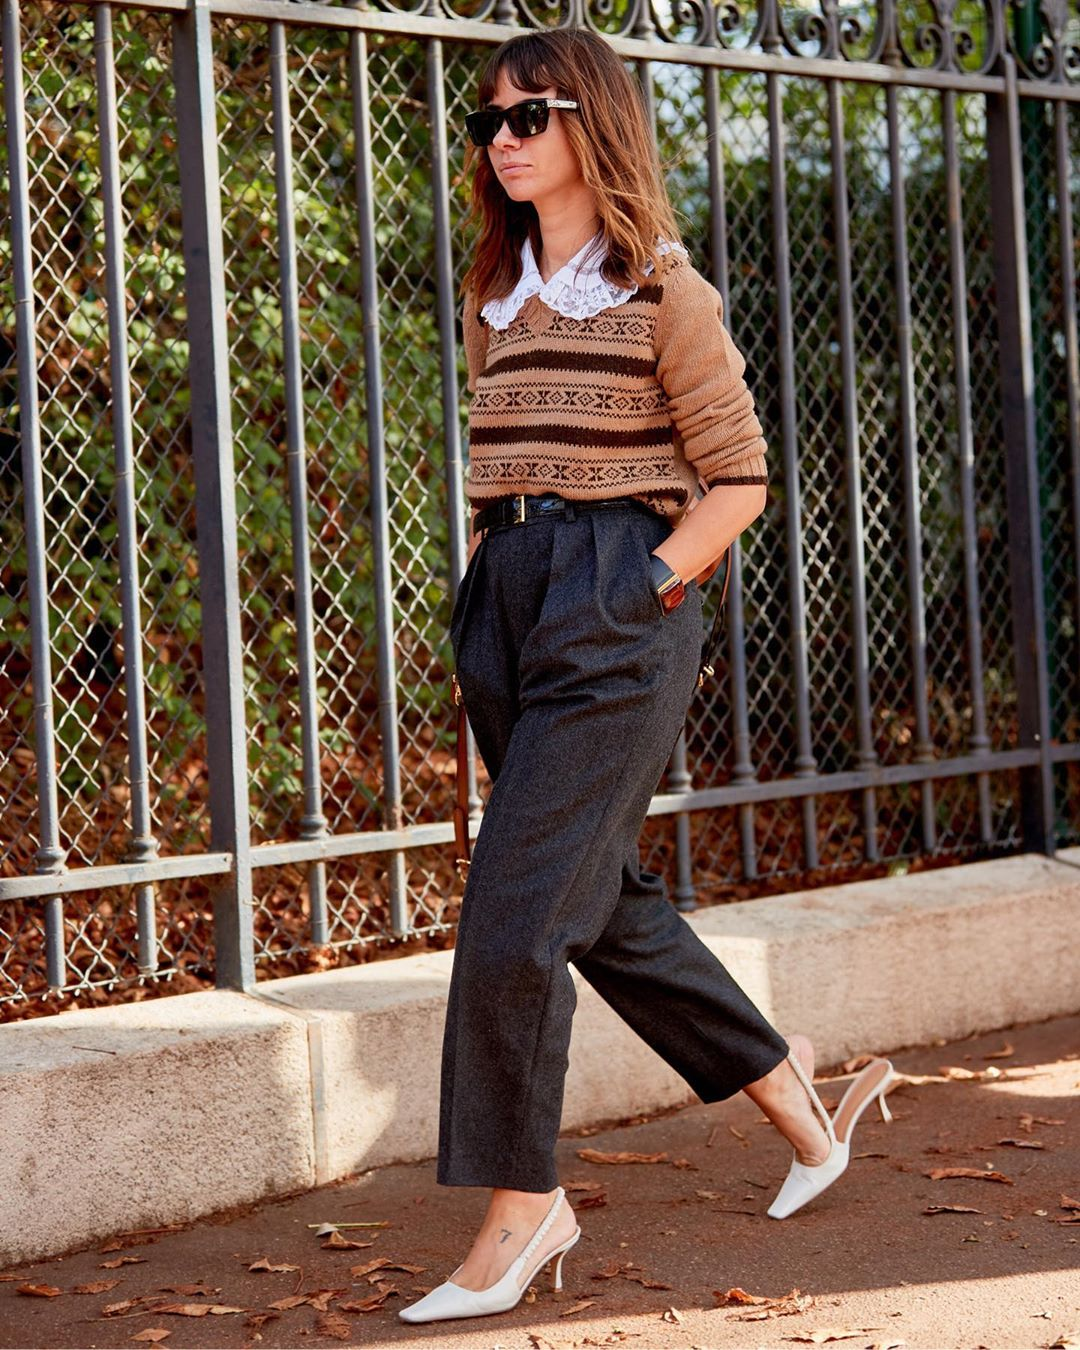 We Love These Chic School Girl-Inspired Outfits — Natasha Goldenberg Street Style